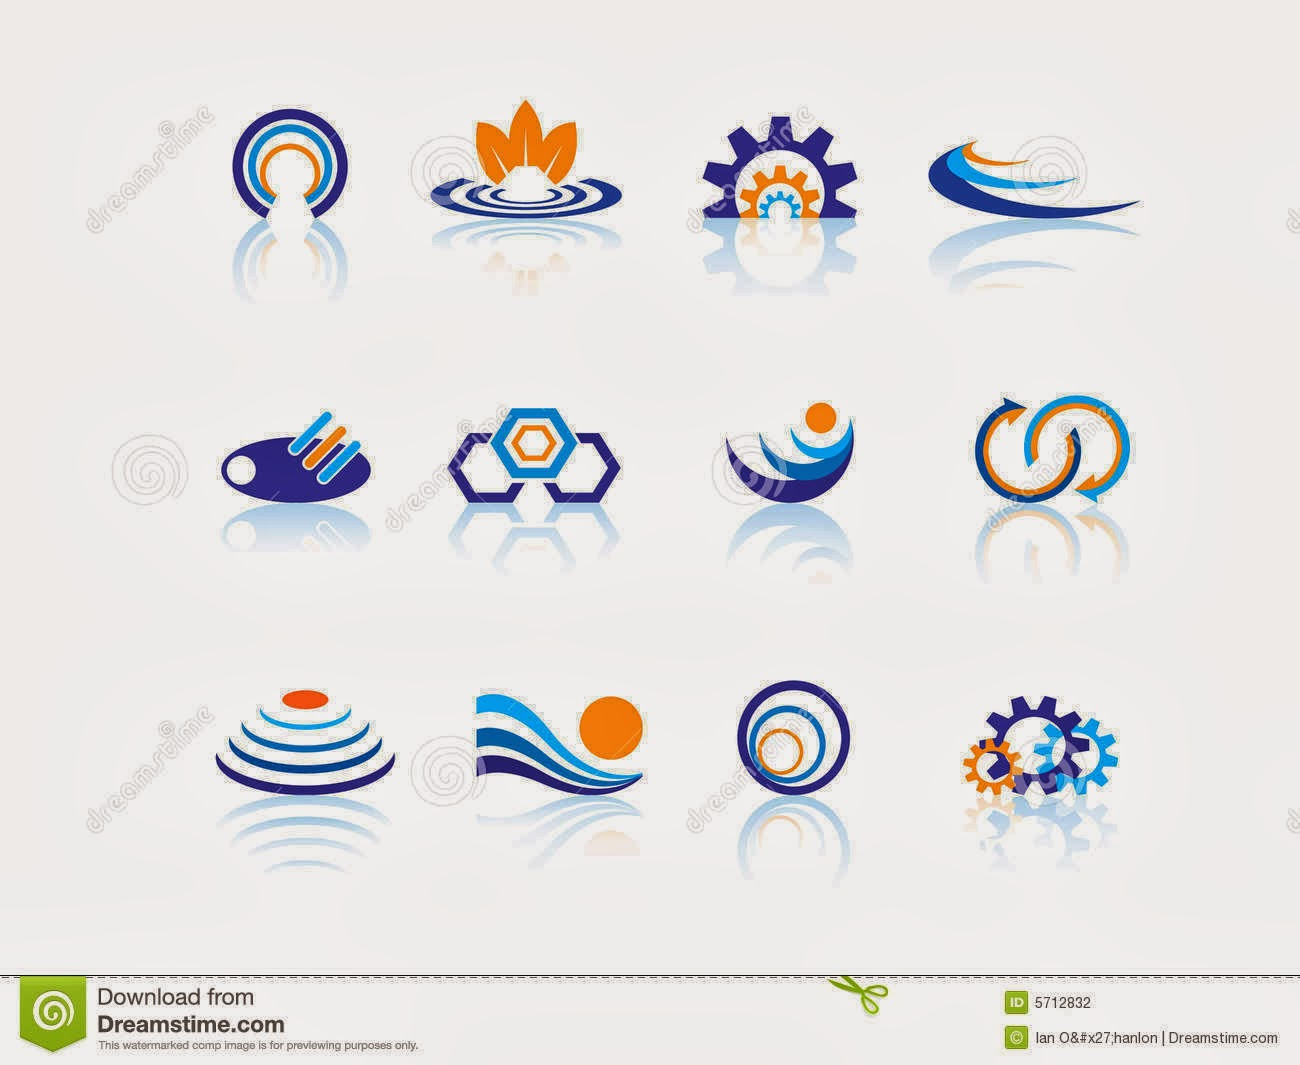 business logo ideas - Video Search Engine at Search.com